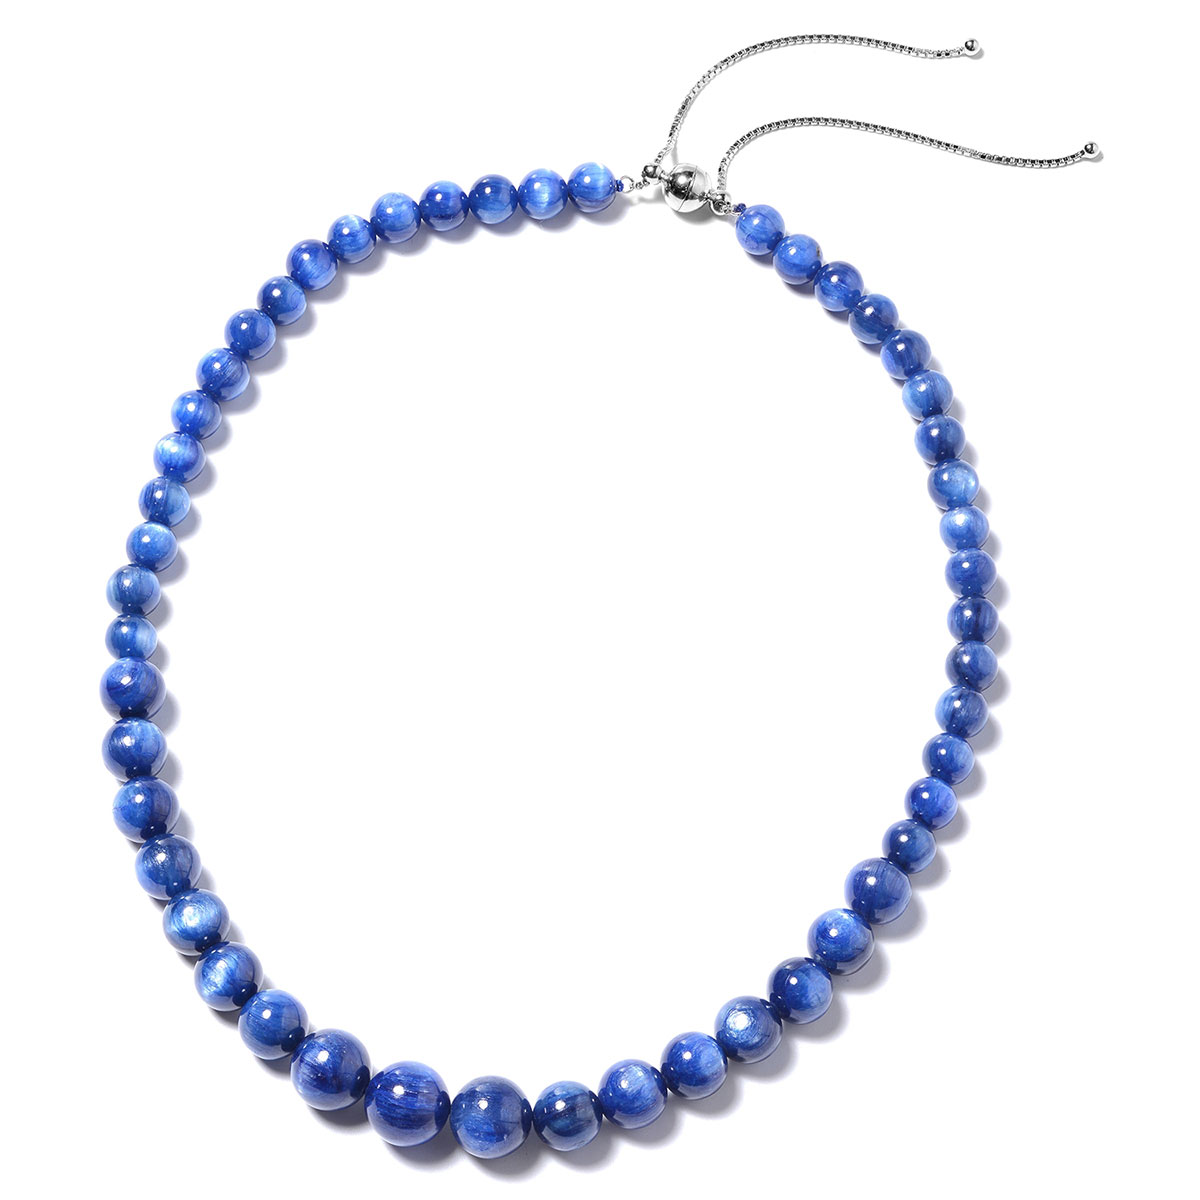 Kyanite Bead Necklace (18-24 in) (Adjustable) in Sterling Silver 345.50 ctw